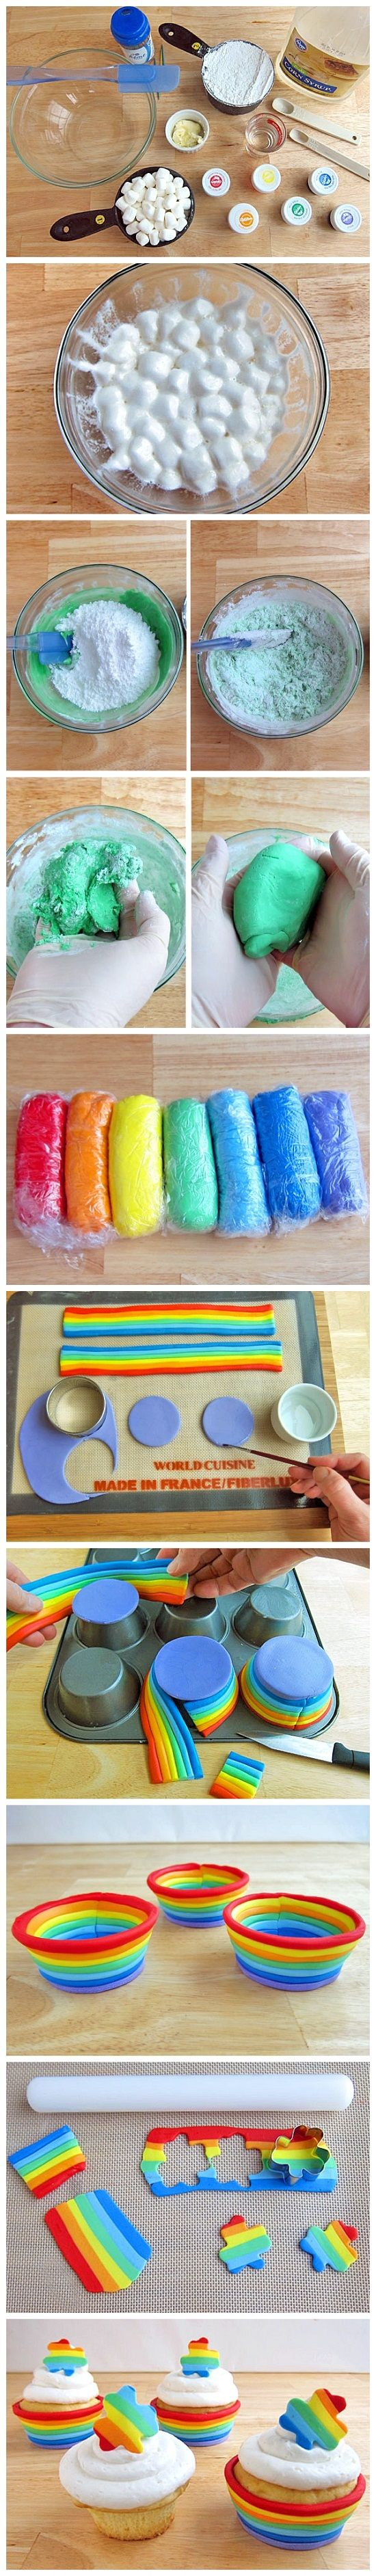 Rainbow Fondant Cups: way too much work for my abilities, I just want the attached fondant recipe!